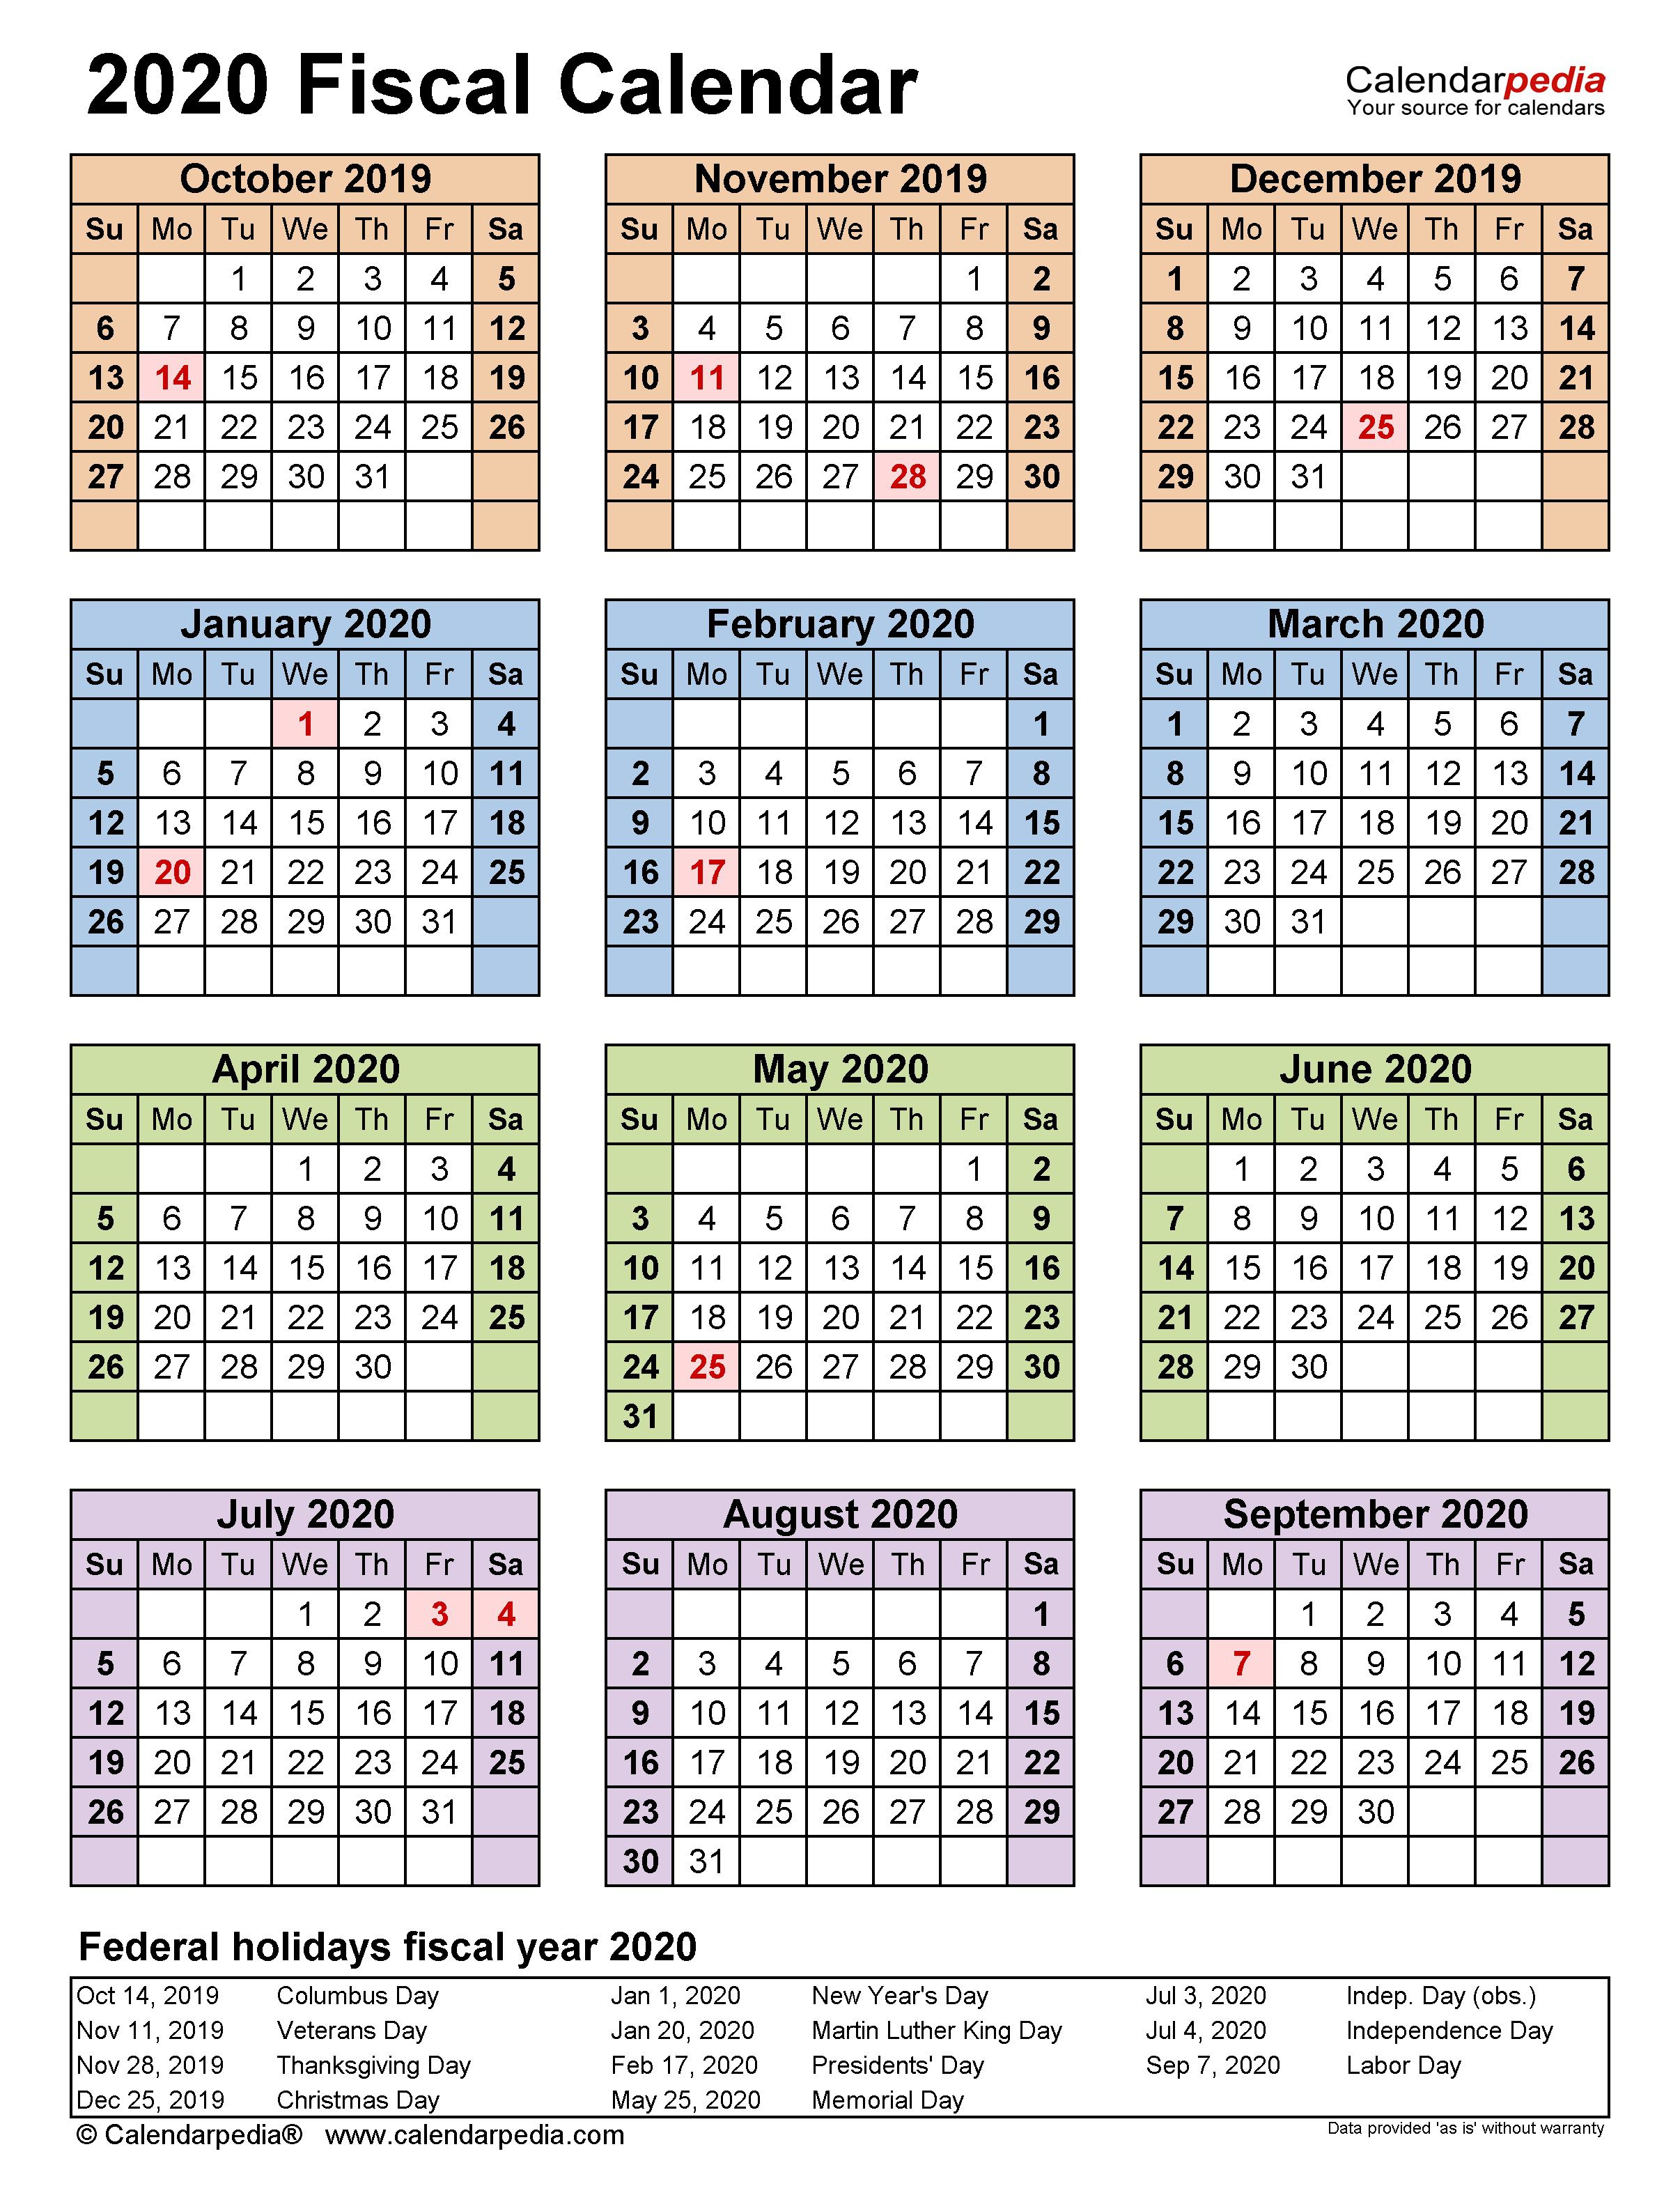 005 Magnificent Payroll Calendar Template 2020 Image  Biweekly Schedule Excel FreeFull